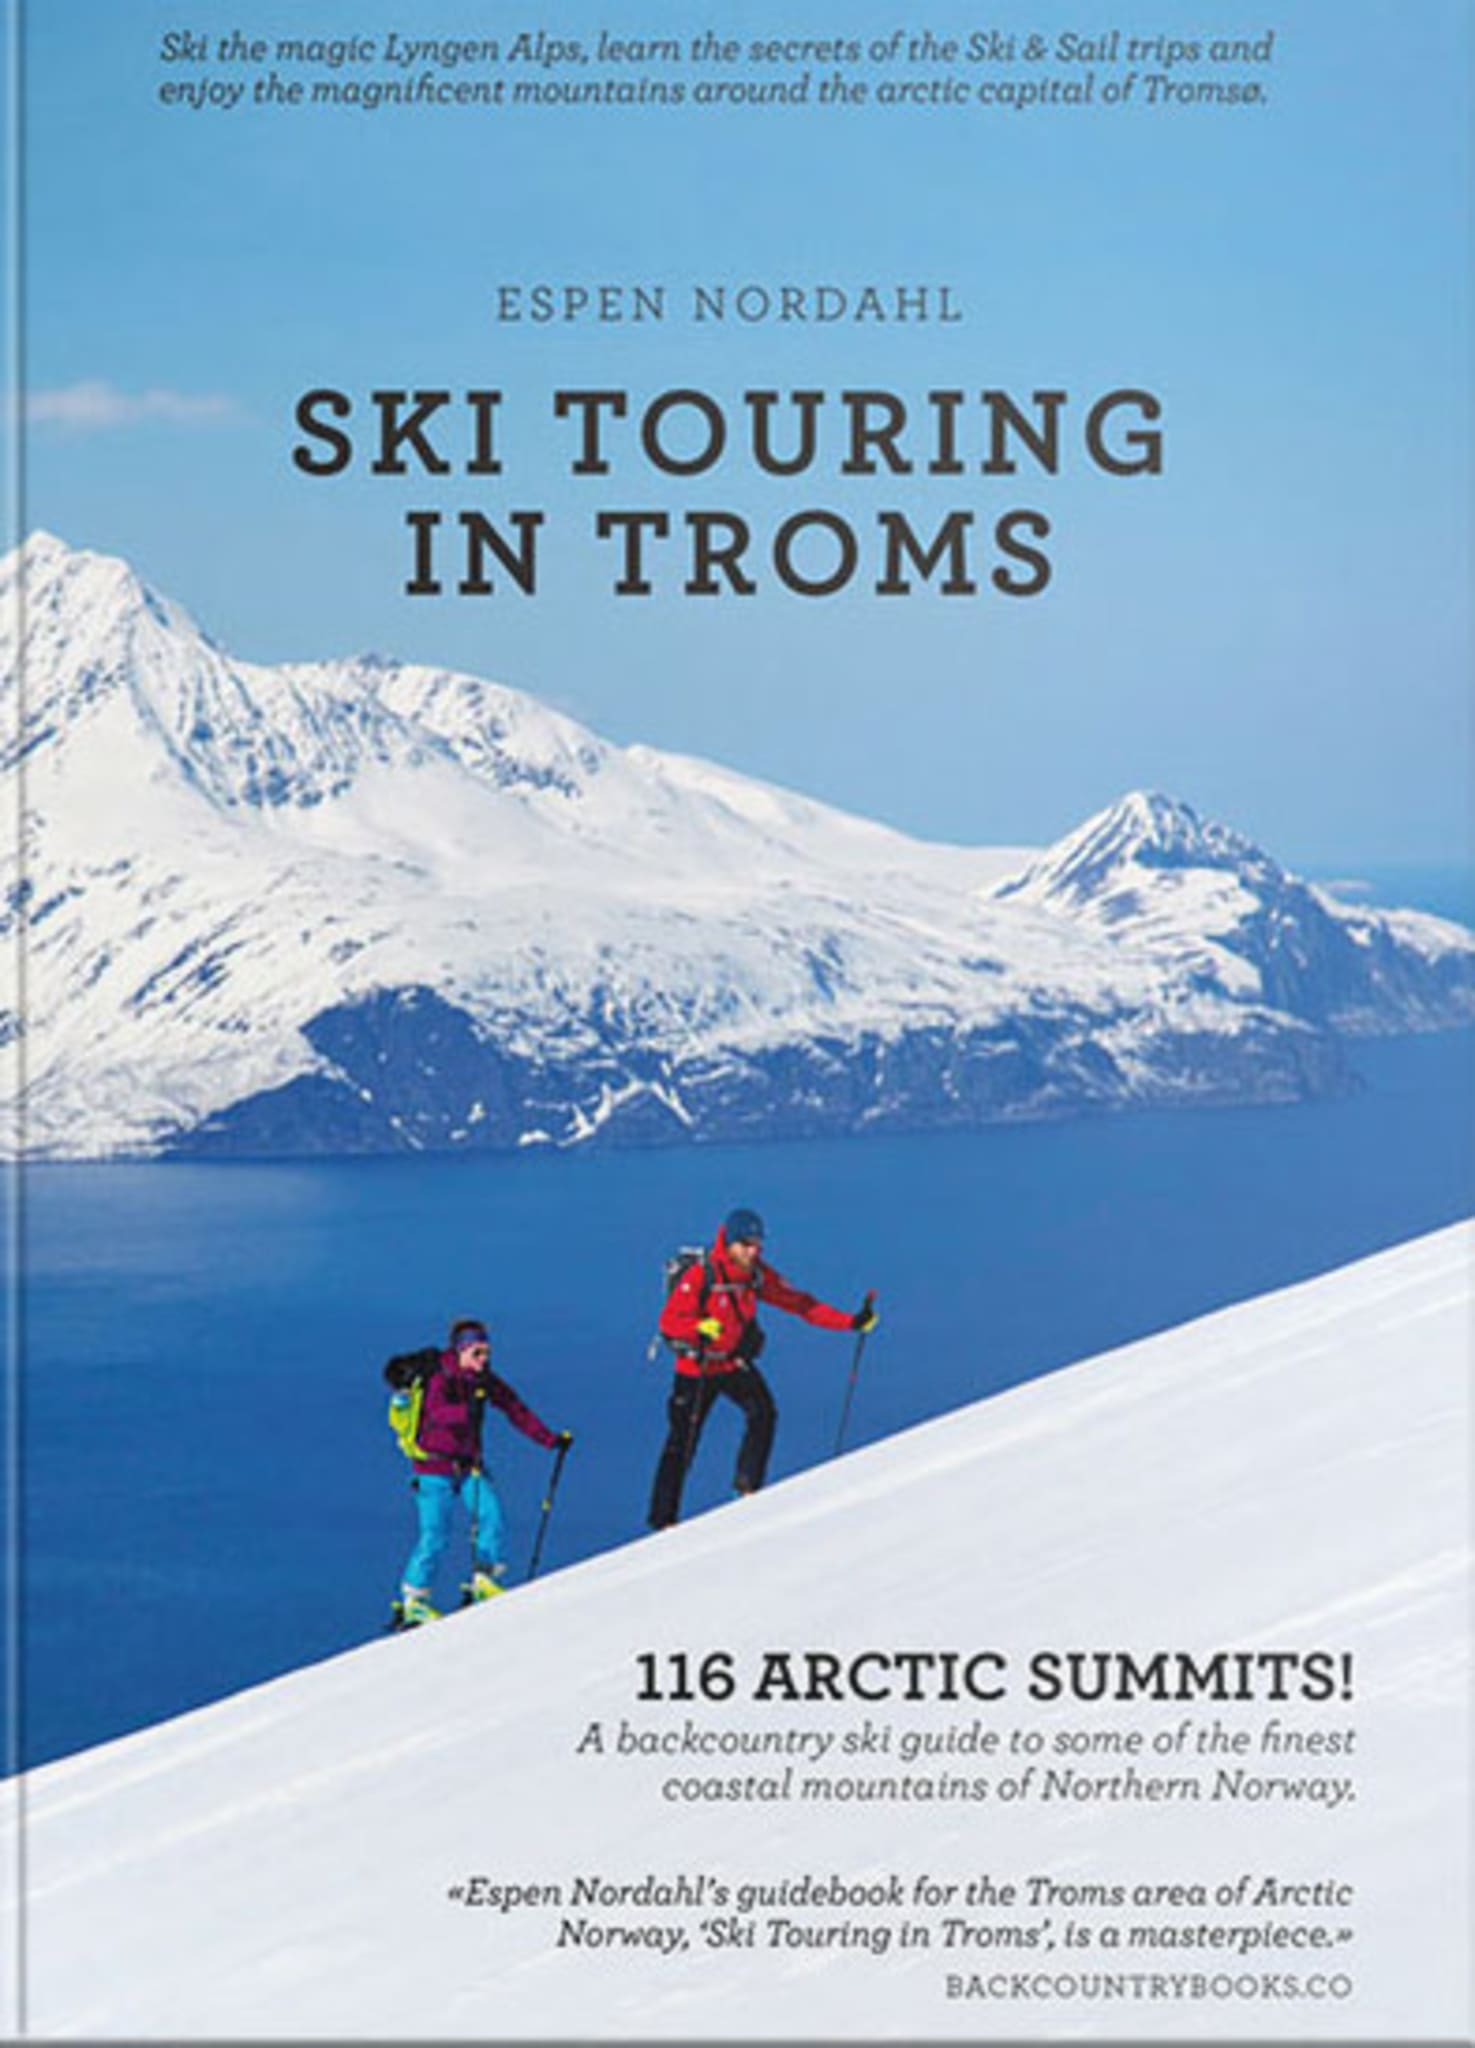 A guide to 116 Arctic Summits!